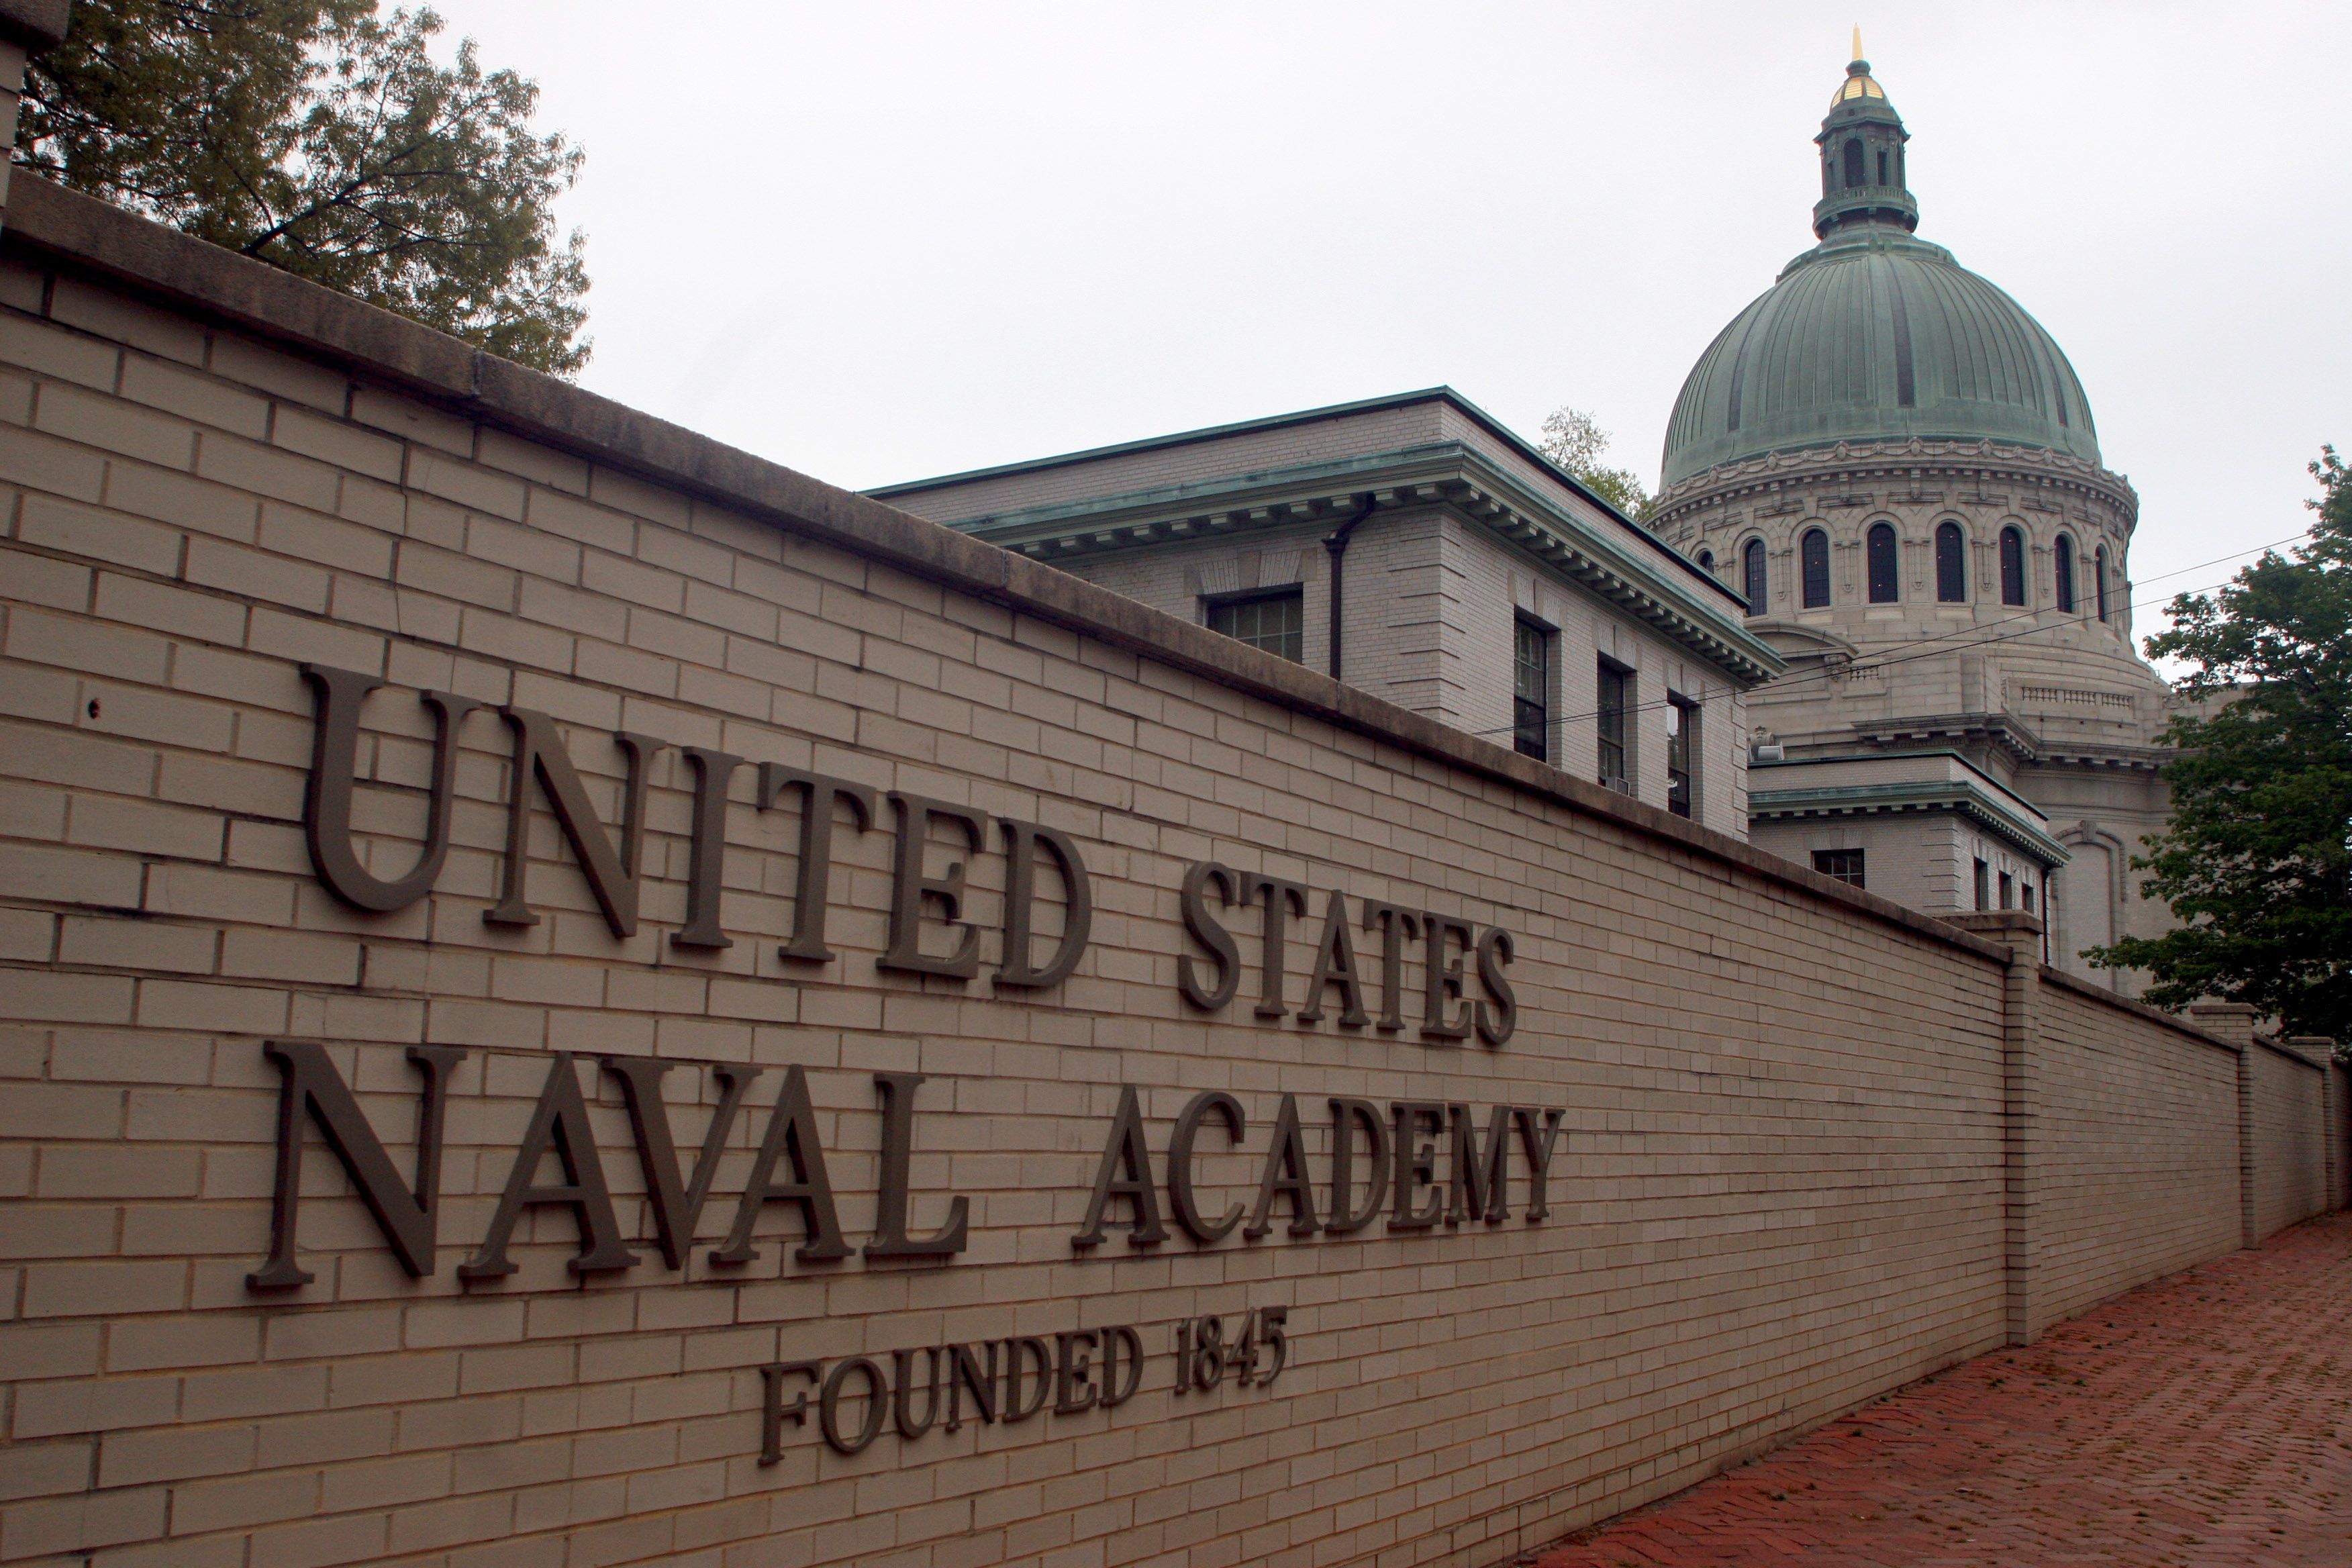 "FILE - This is a May 7, 2007 file photo showing the United States Naval Academy in Annapolis, Md. The U.S. Naval Academy is investigating allegations that three members of its football team sexually assaulted a female midshipman at an off-campus house last year, a Pentagon spokesman said Friday, May 31, 2013, and a lawyer for the woman says she was ""ostracized"" on campus after she reported it. (AP Photo/Kathleen Lange, File)"